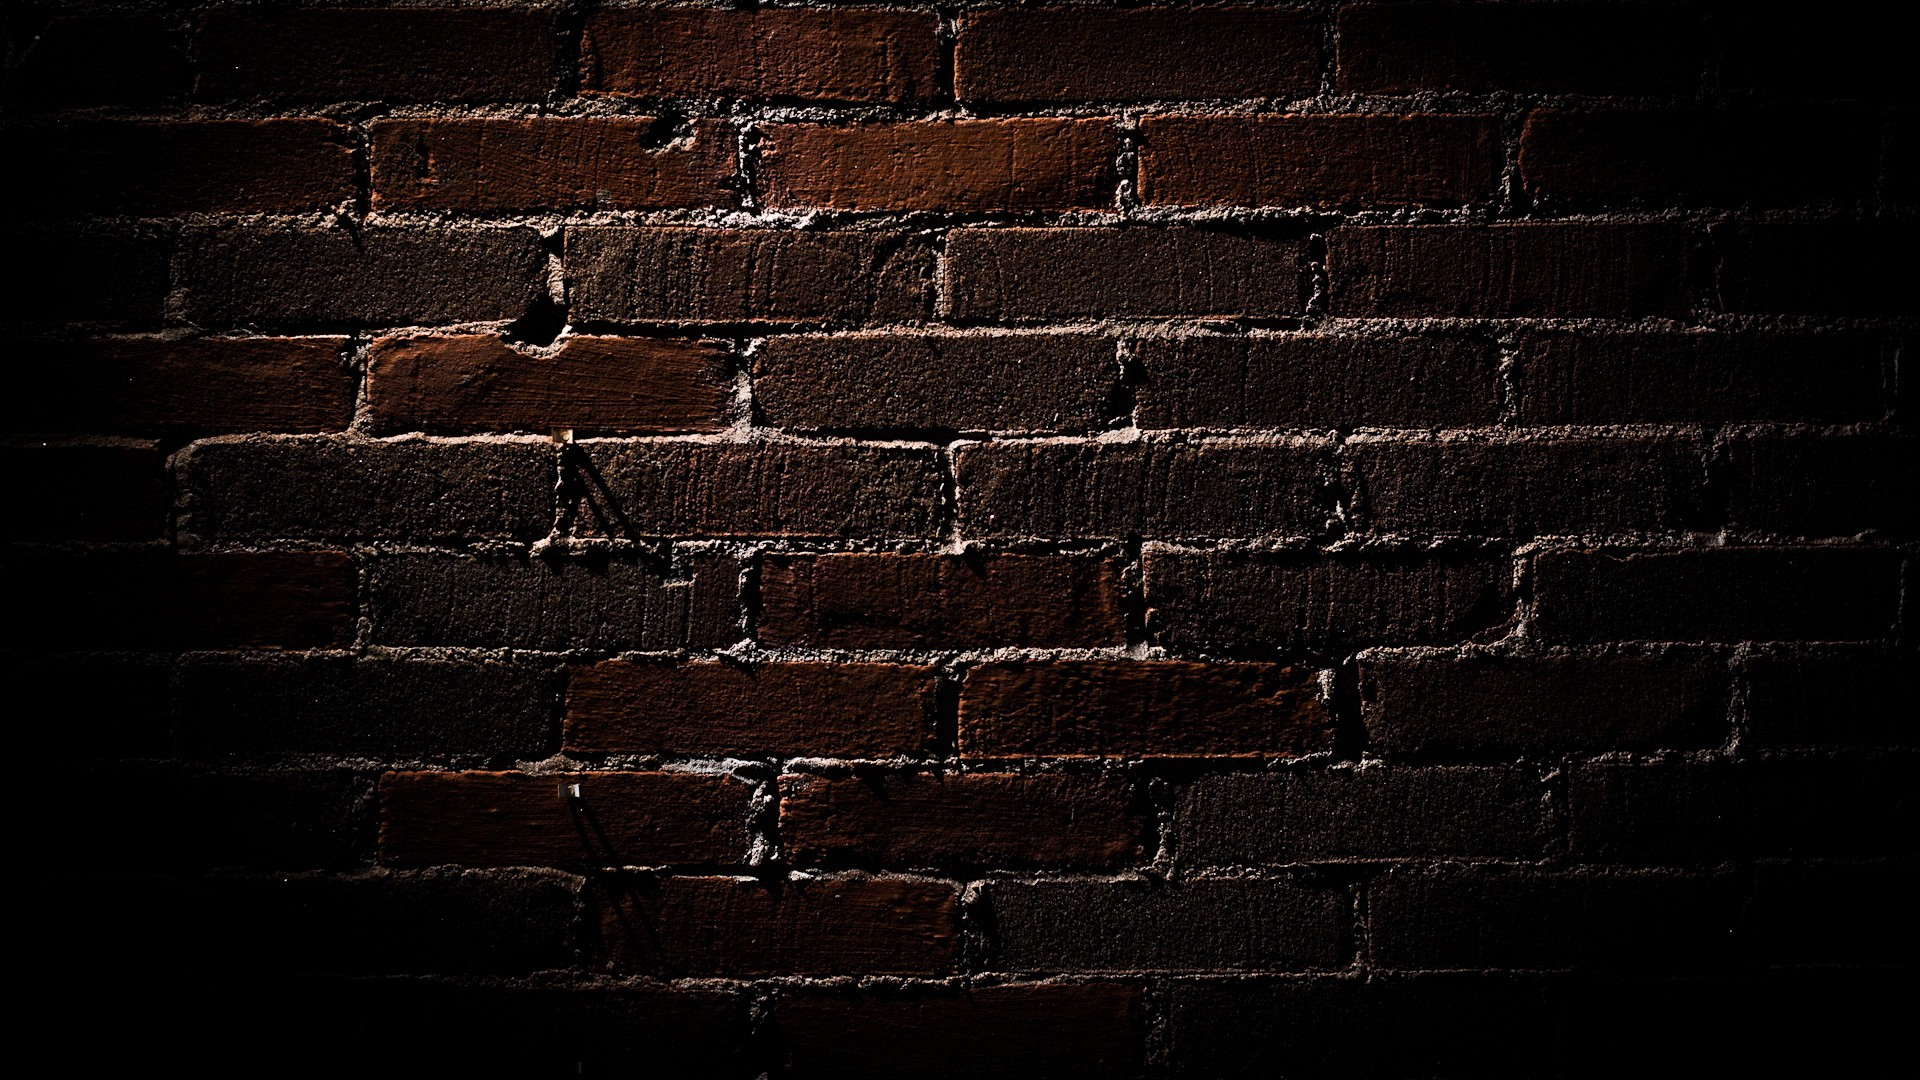 Brick wallpaper 1920x1080 41069 - Wallpaper for walls images ...